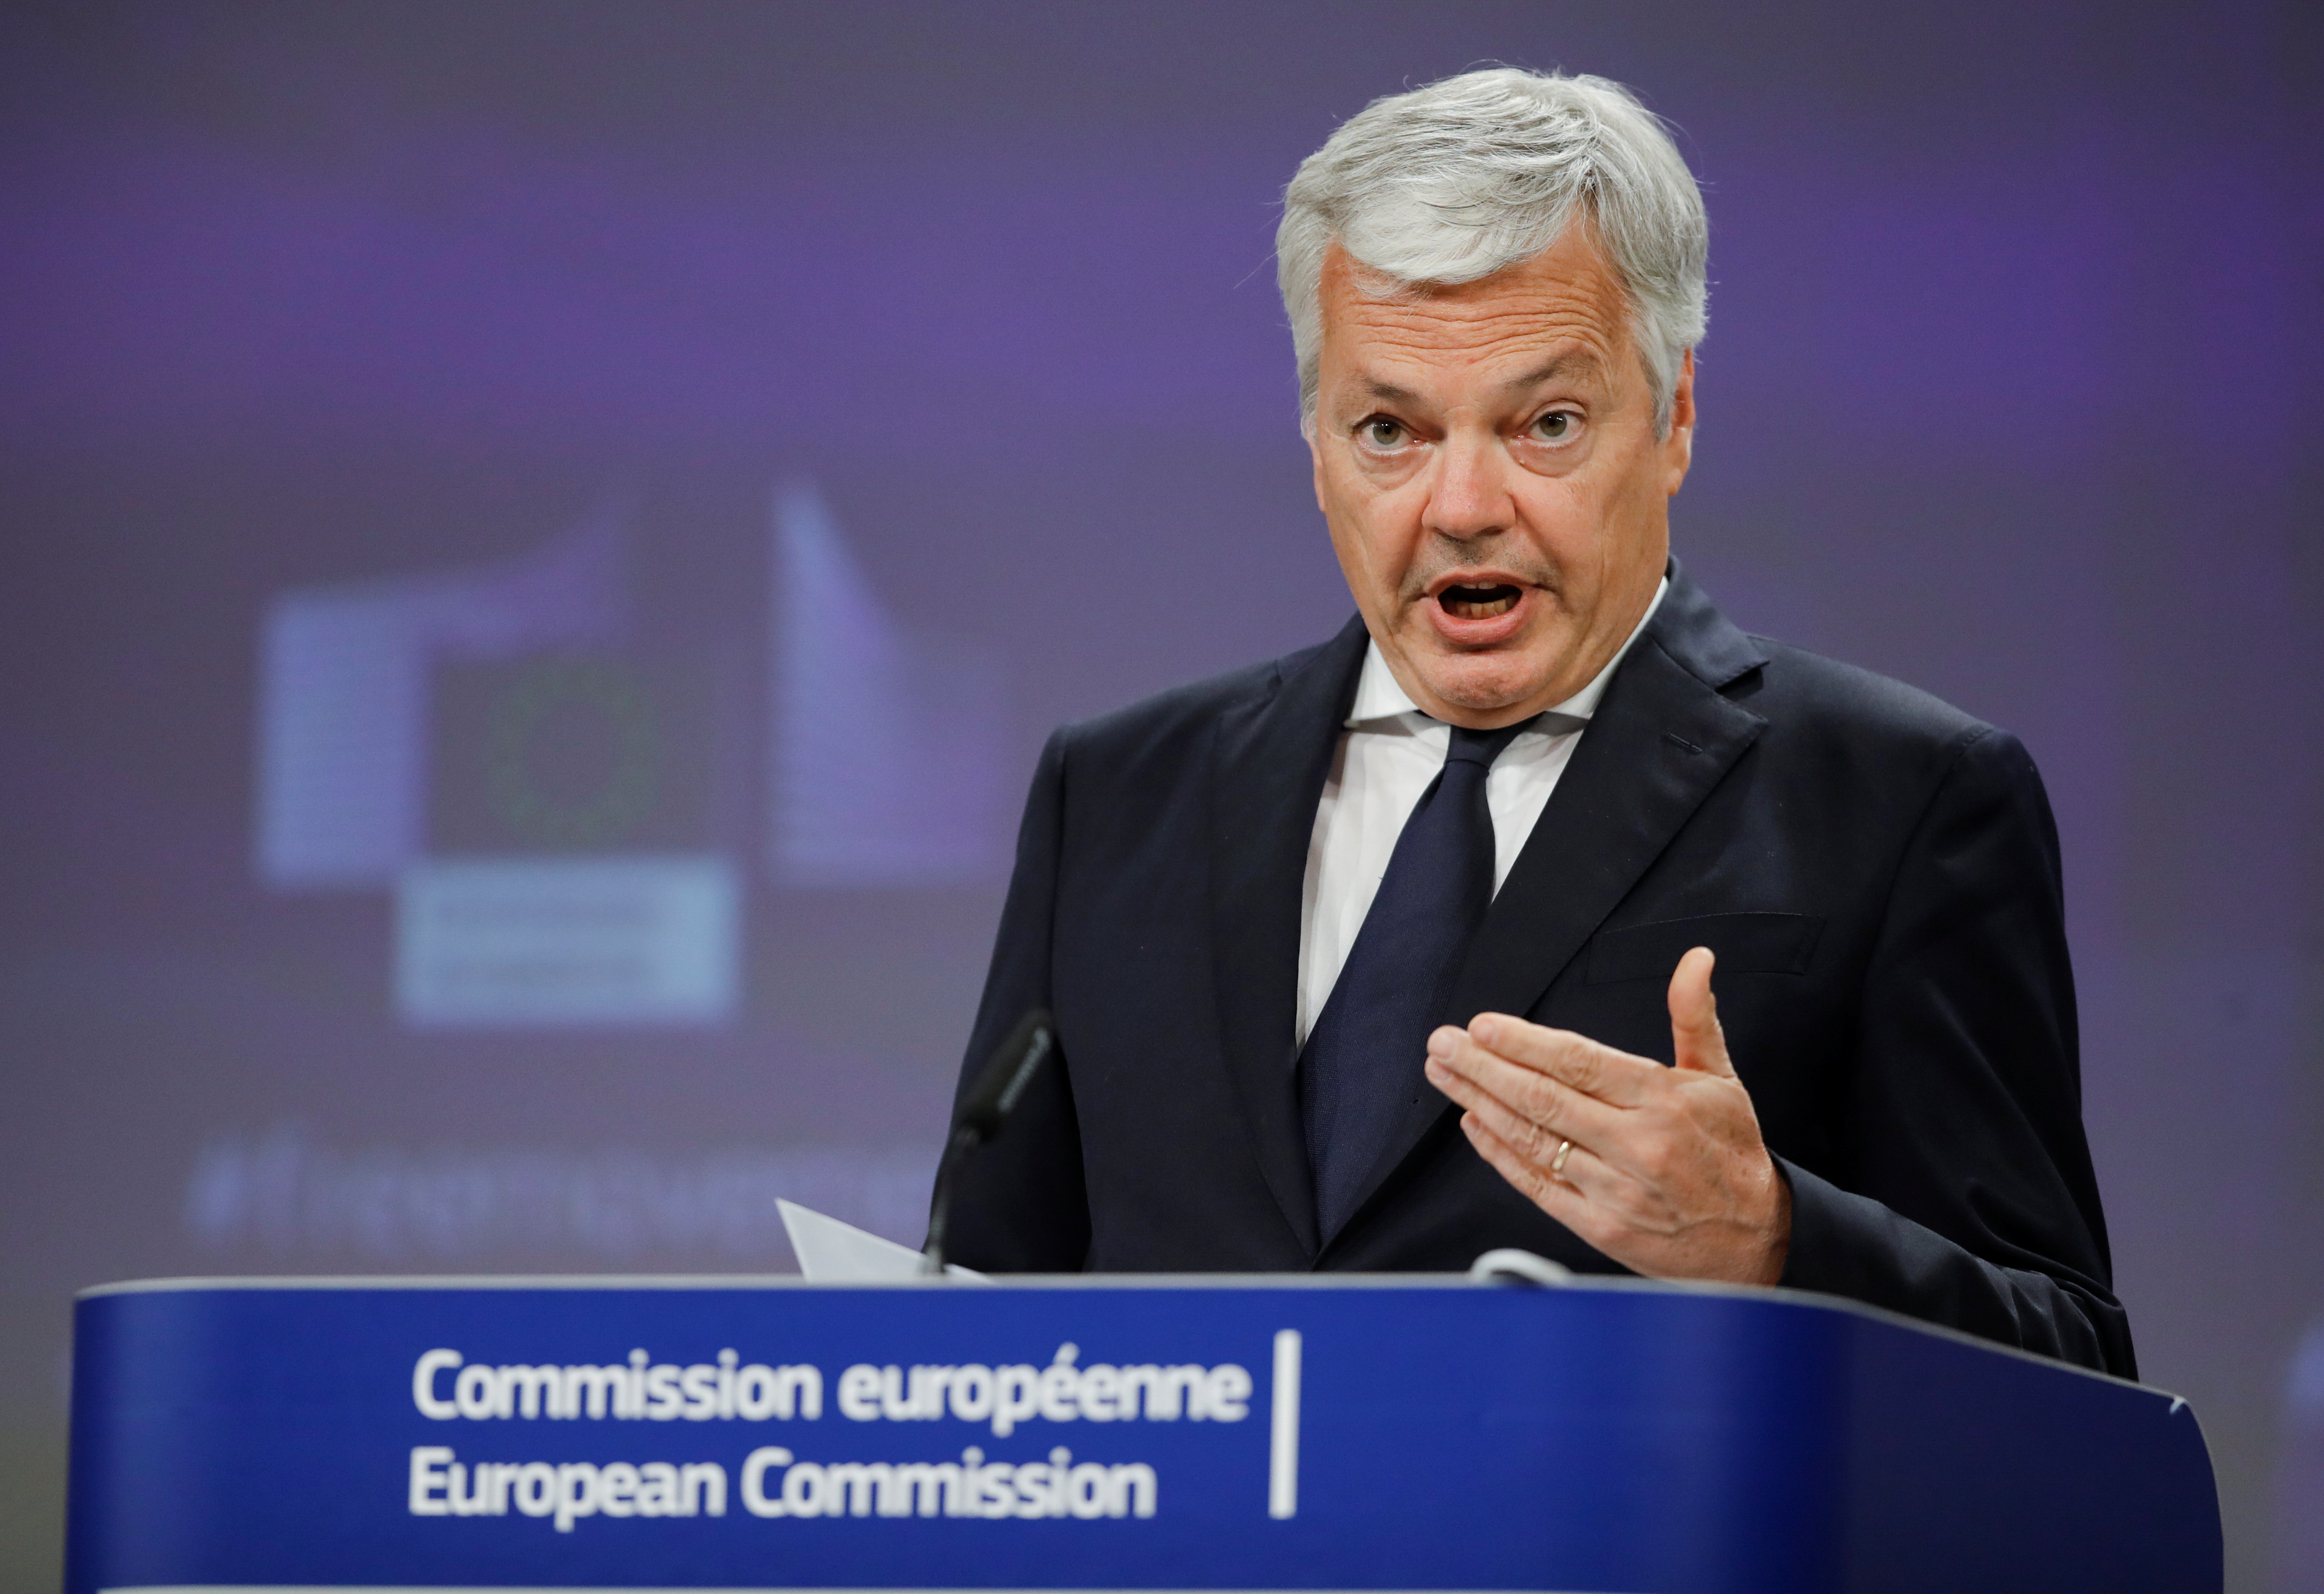 European Commissioner for Justice Didier Reynders gives a press conference on the update of the recommendation for free movement measures in the European Union, in Brussels, Belgium, May 31, 2021. Olivier Hoslet/Pool via REUTERS